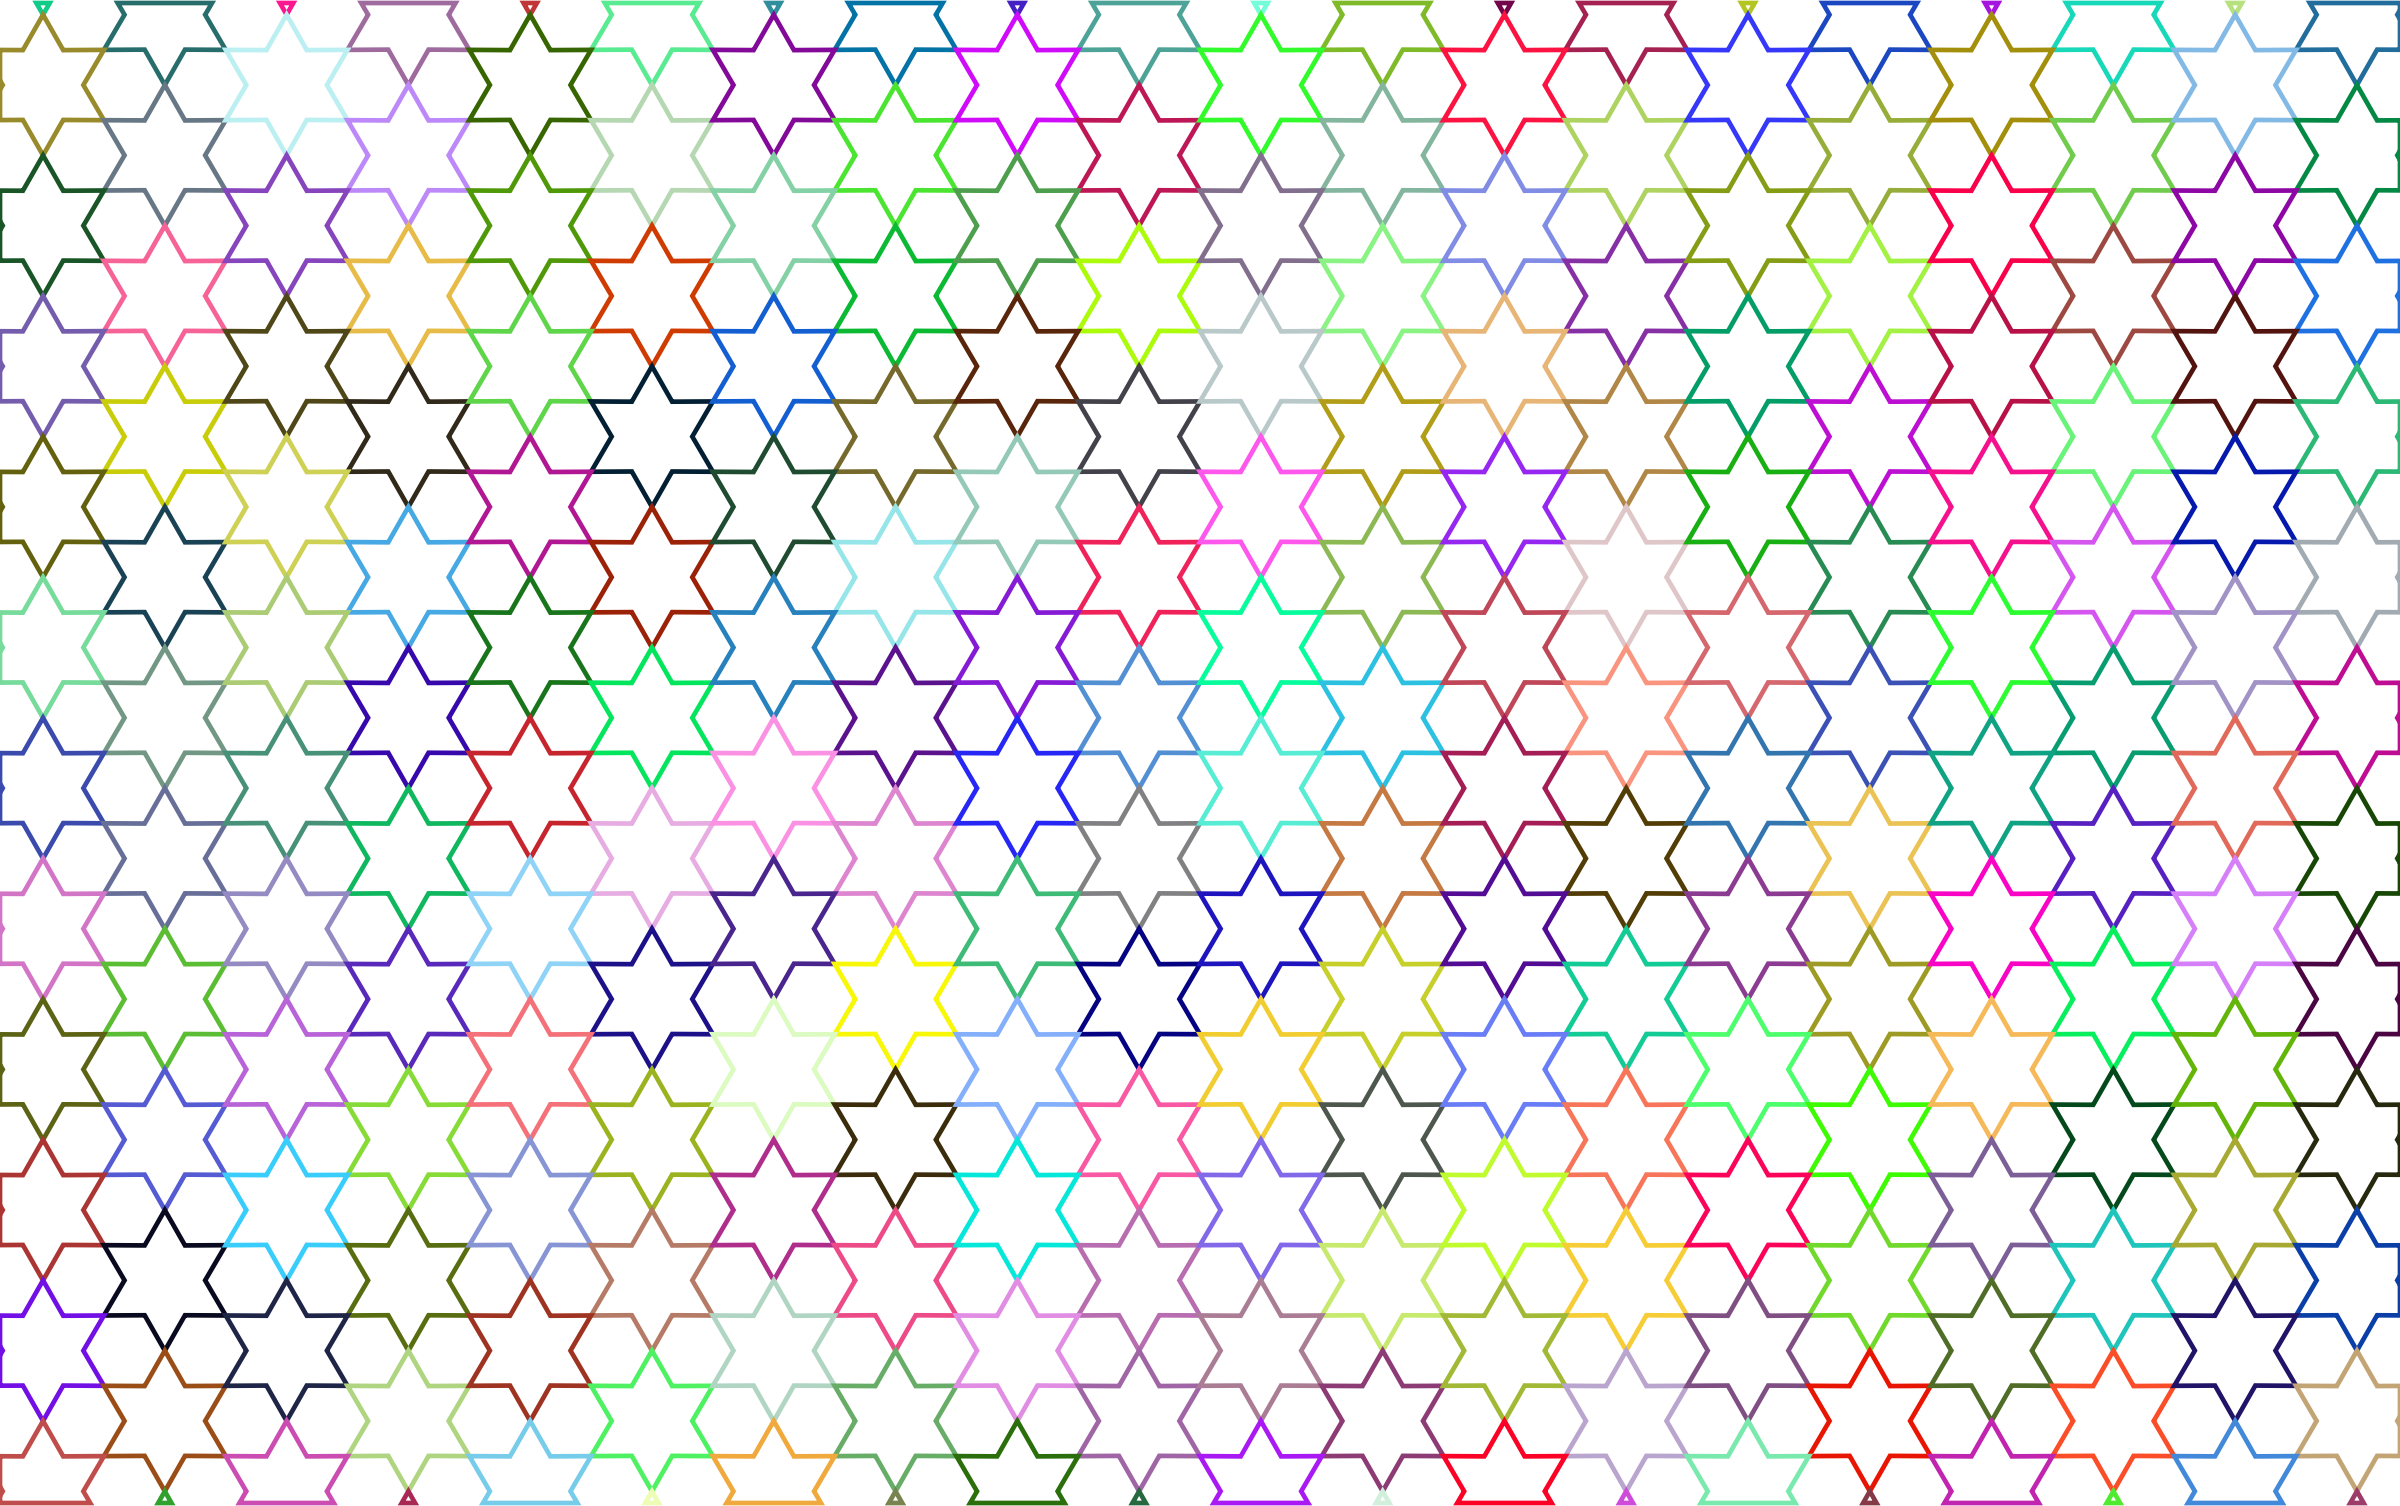 Abstract Stars Geometric Pattern Prismatic No Background by GDJ